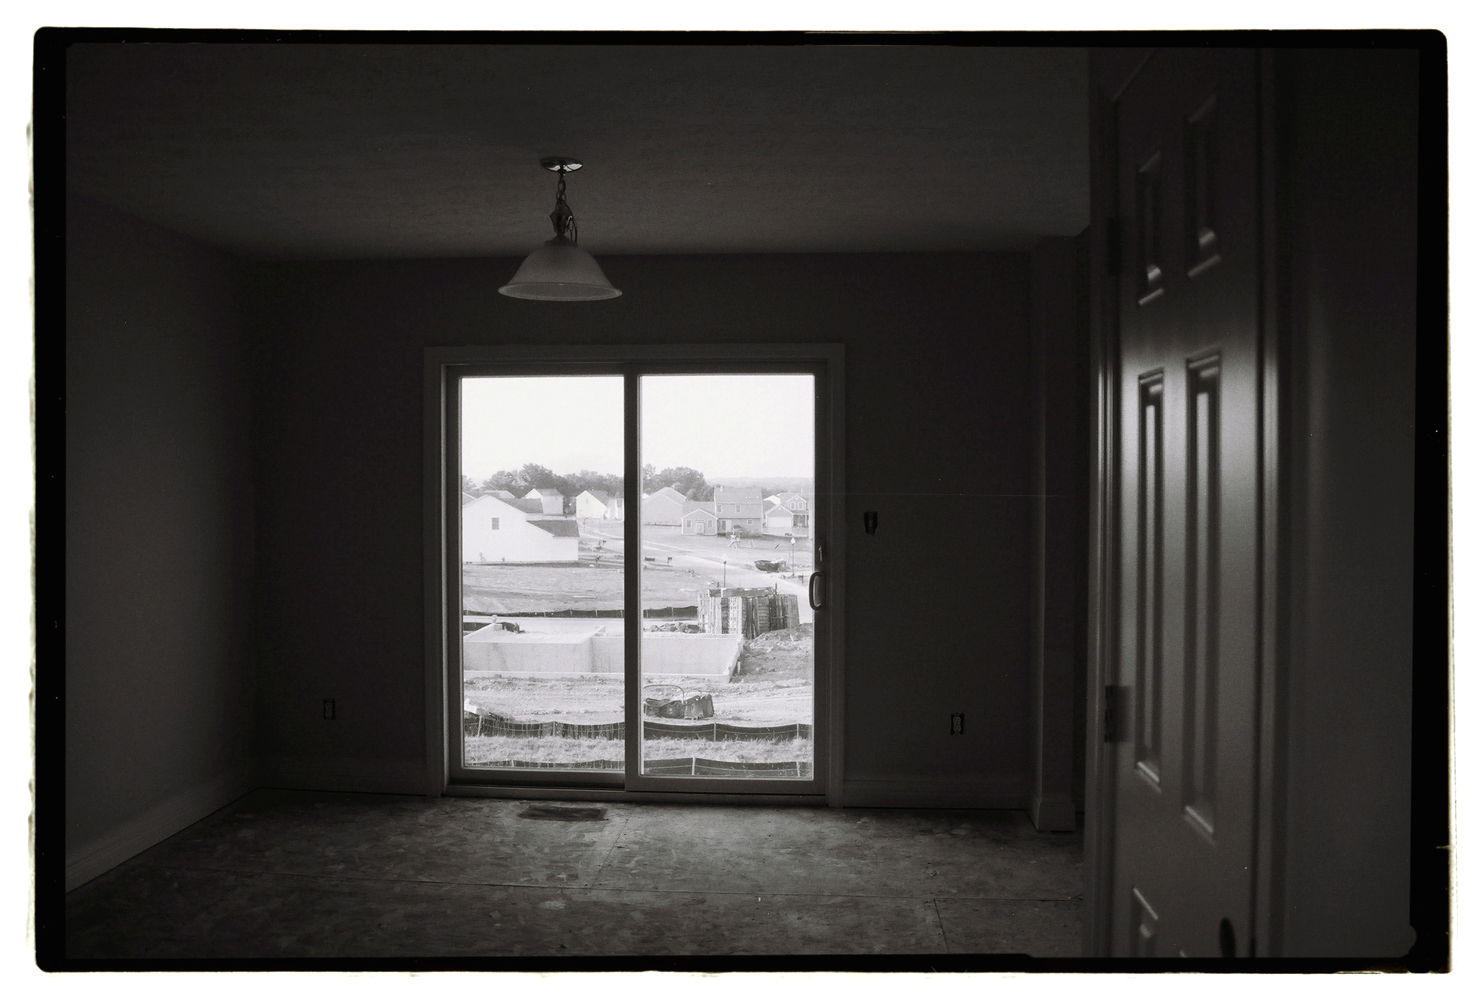 Unfinished House, Kentucky, 2005